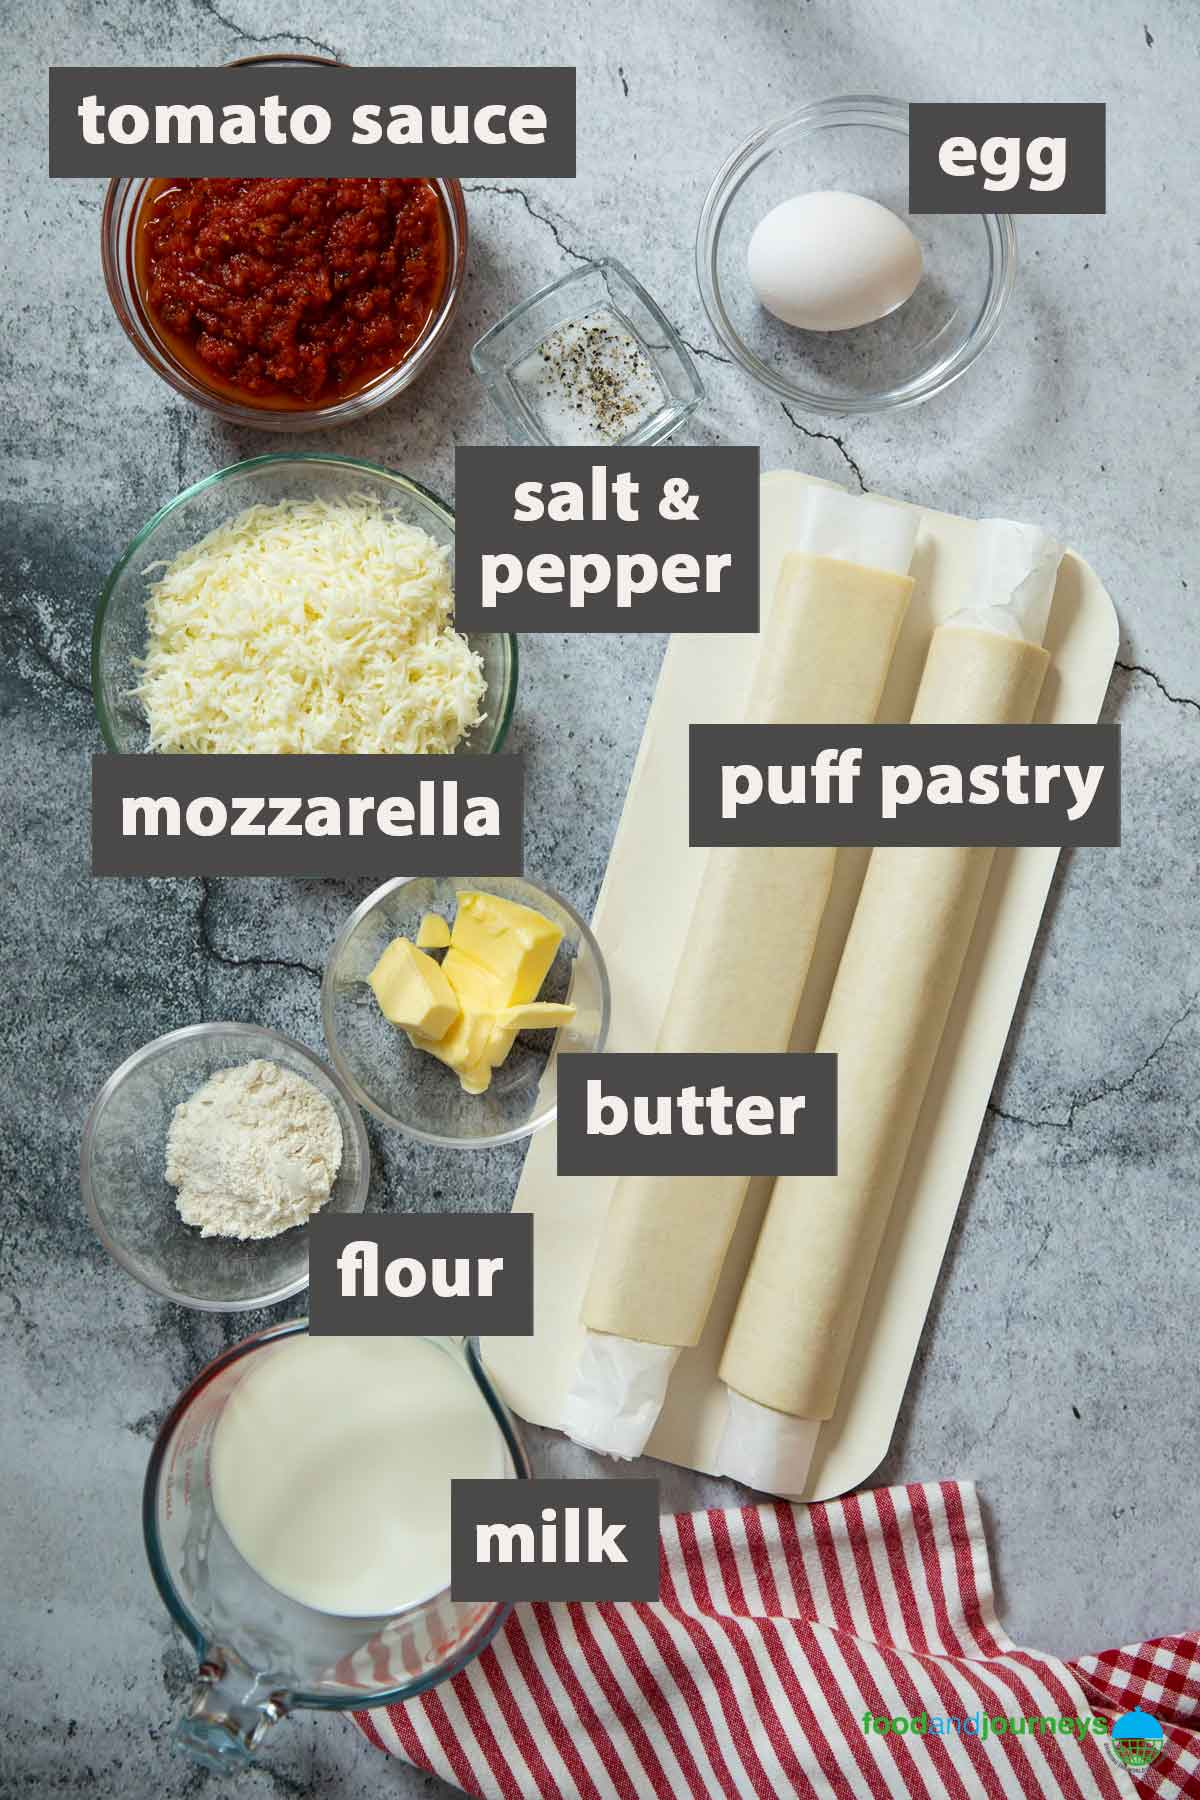 An image showing all the ingredients you need to prepare Rustico Salentino.